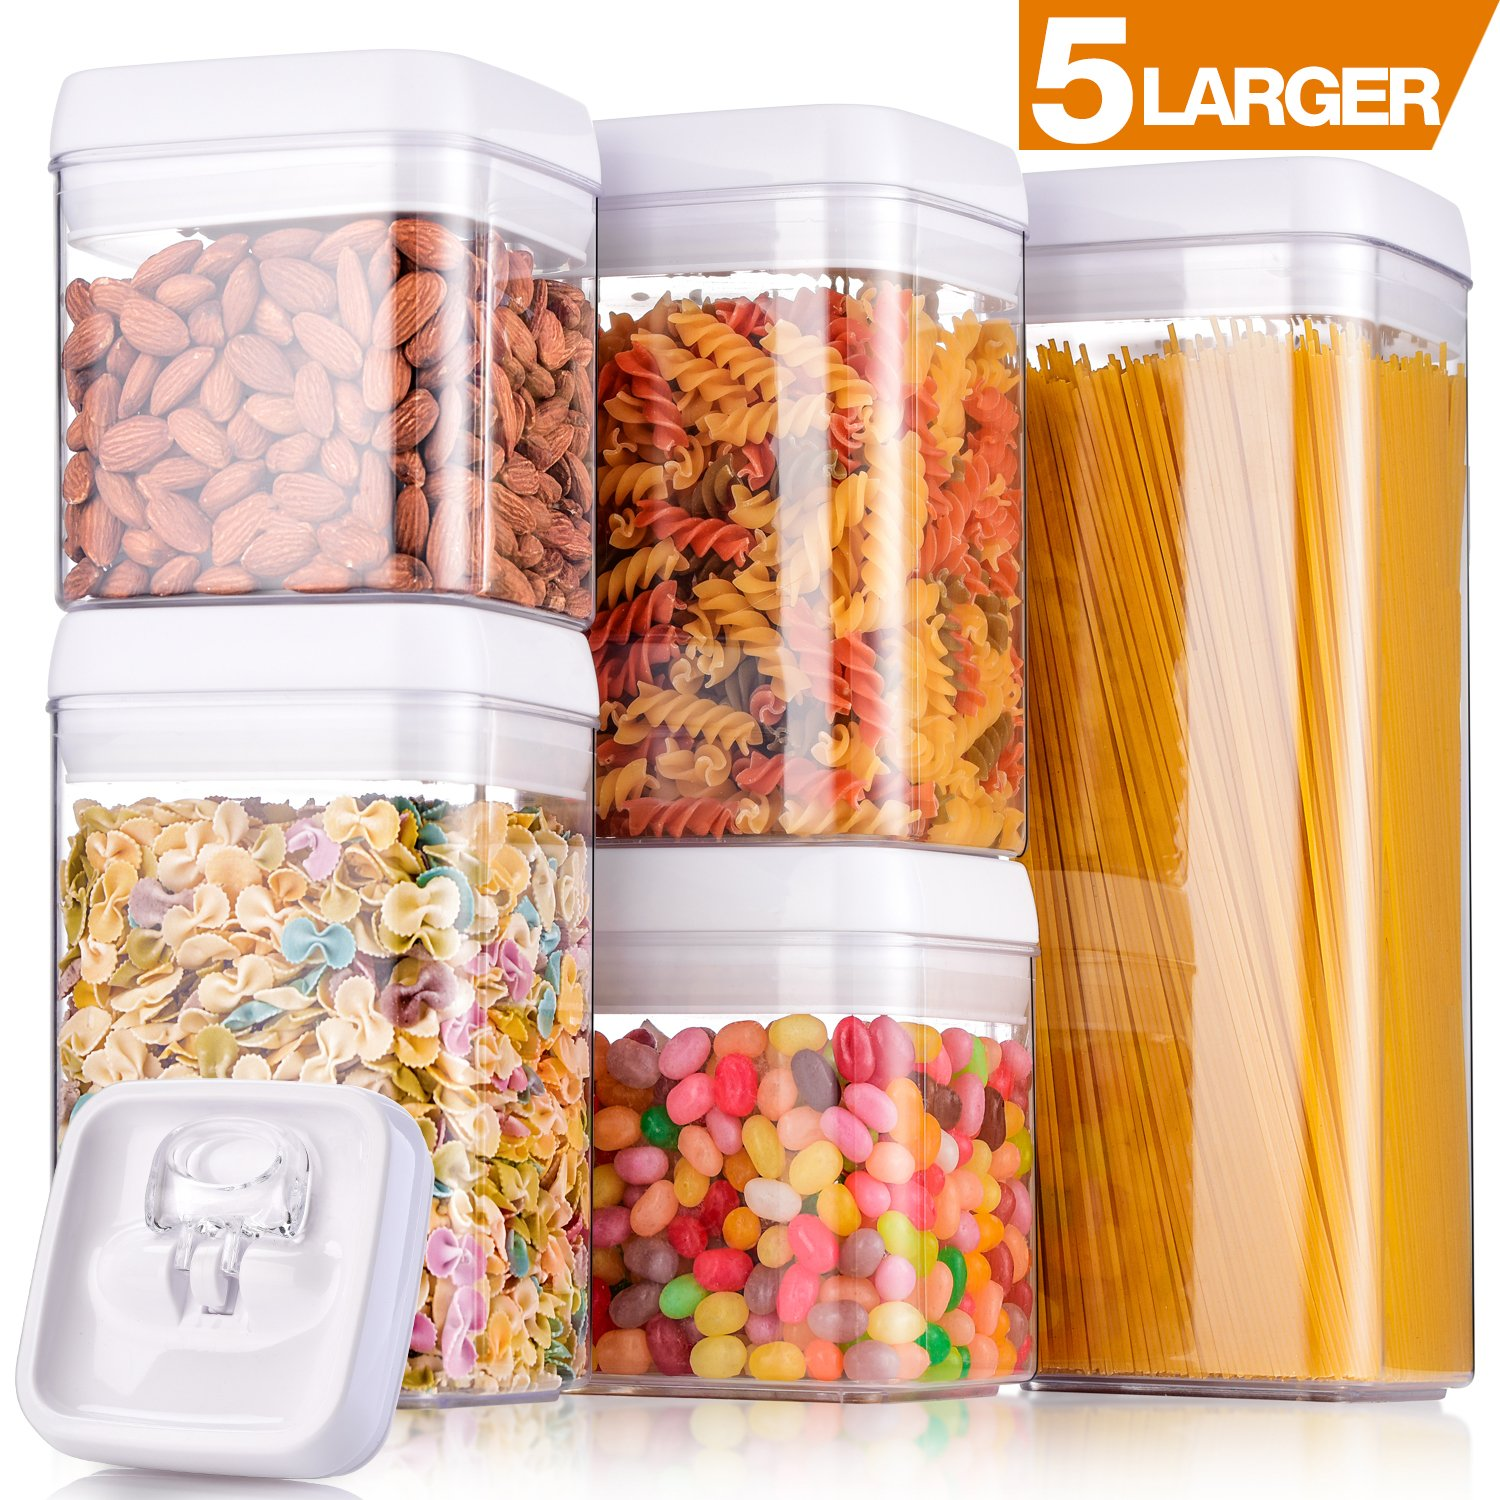 "Larger Storage Container, [5-Piece] Senbowe Air-Tight Food Storage Container Set - BPA Free - Durable Plastic - Clear Visual Window with White Lids - Keep Food Dry & Fresh with Easy Lock (4.8'' x 4.8"")"